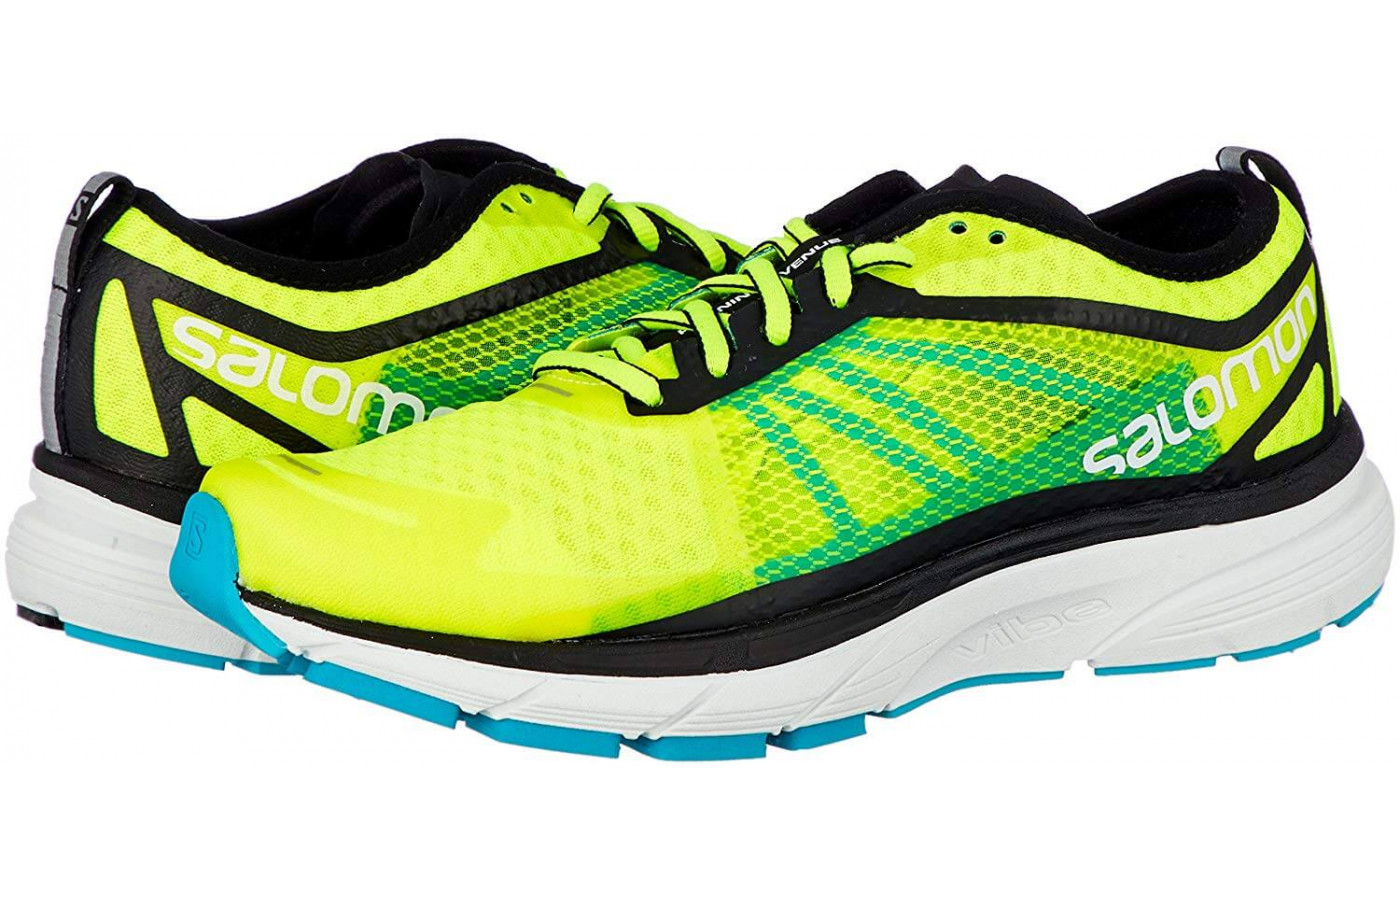 Salomon Sonic RA Max left right